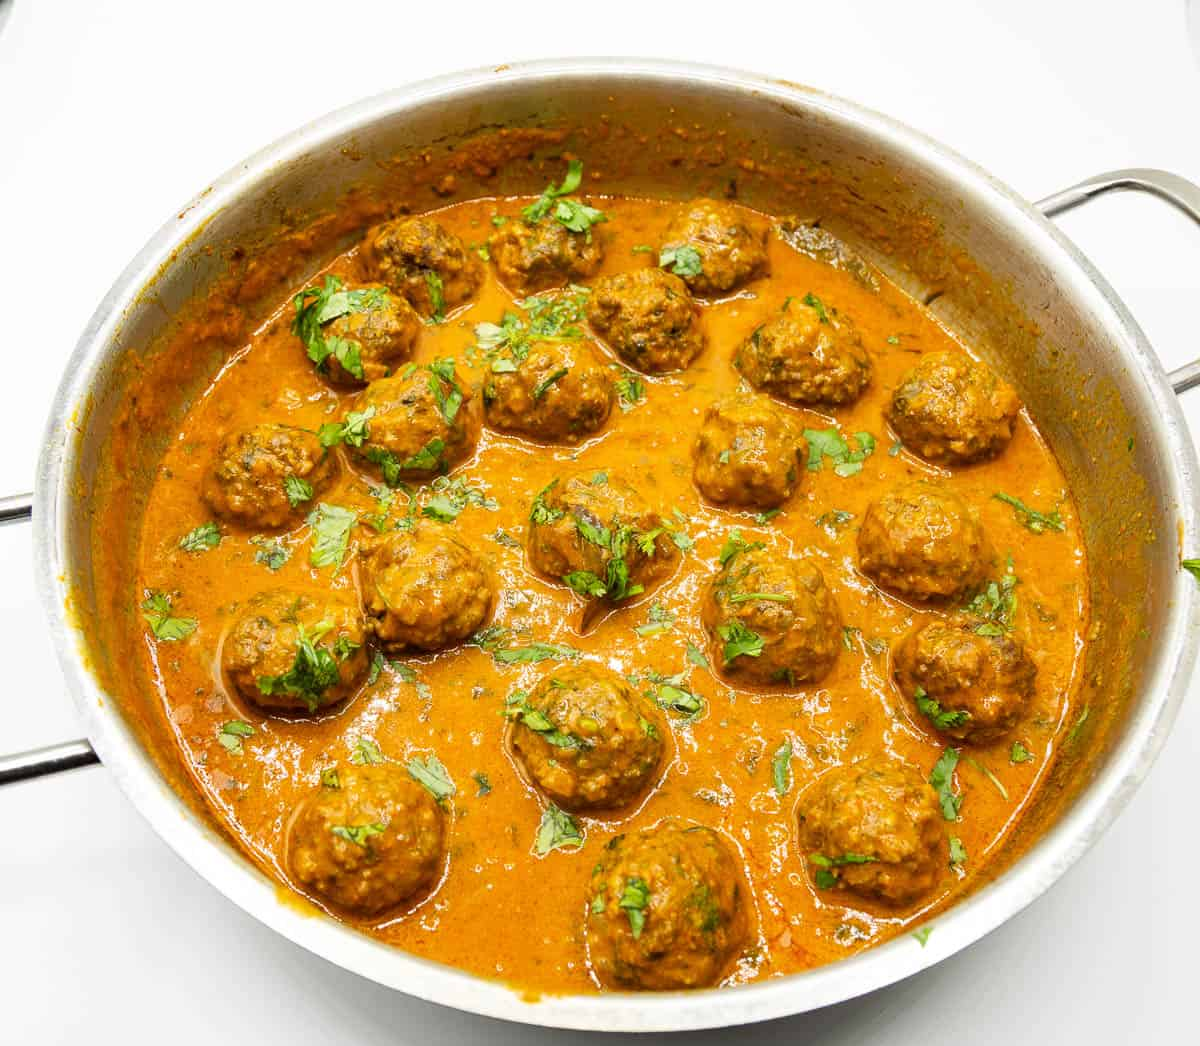 Skillet with curry and kofta.